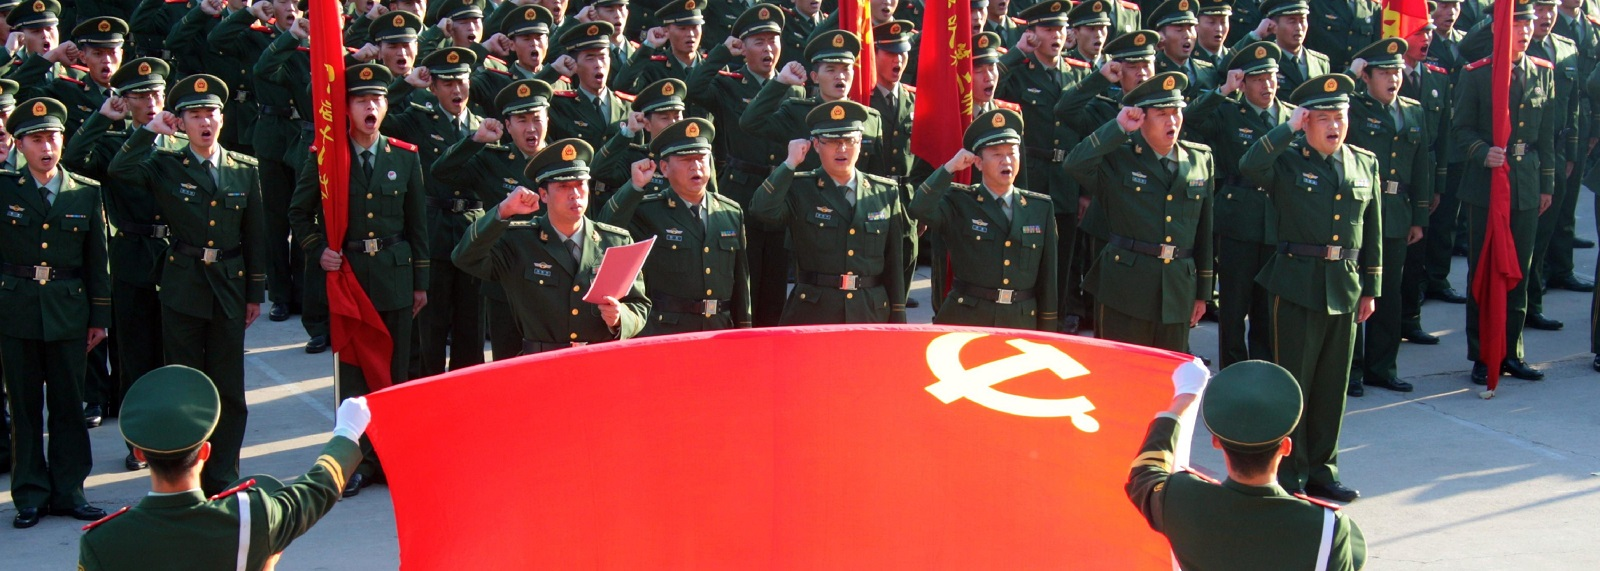 Soldiers saluting the Chinese Communist Party flag in Beijing (Photo:Getty Images)